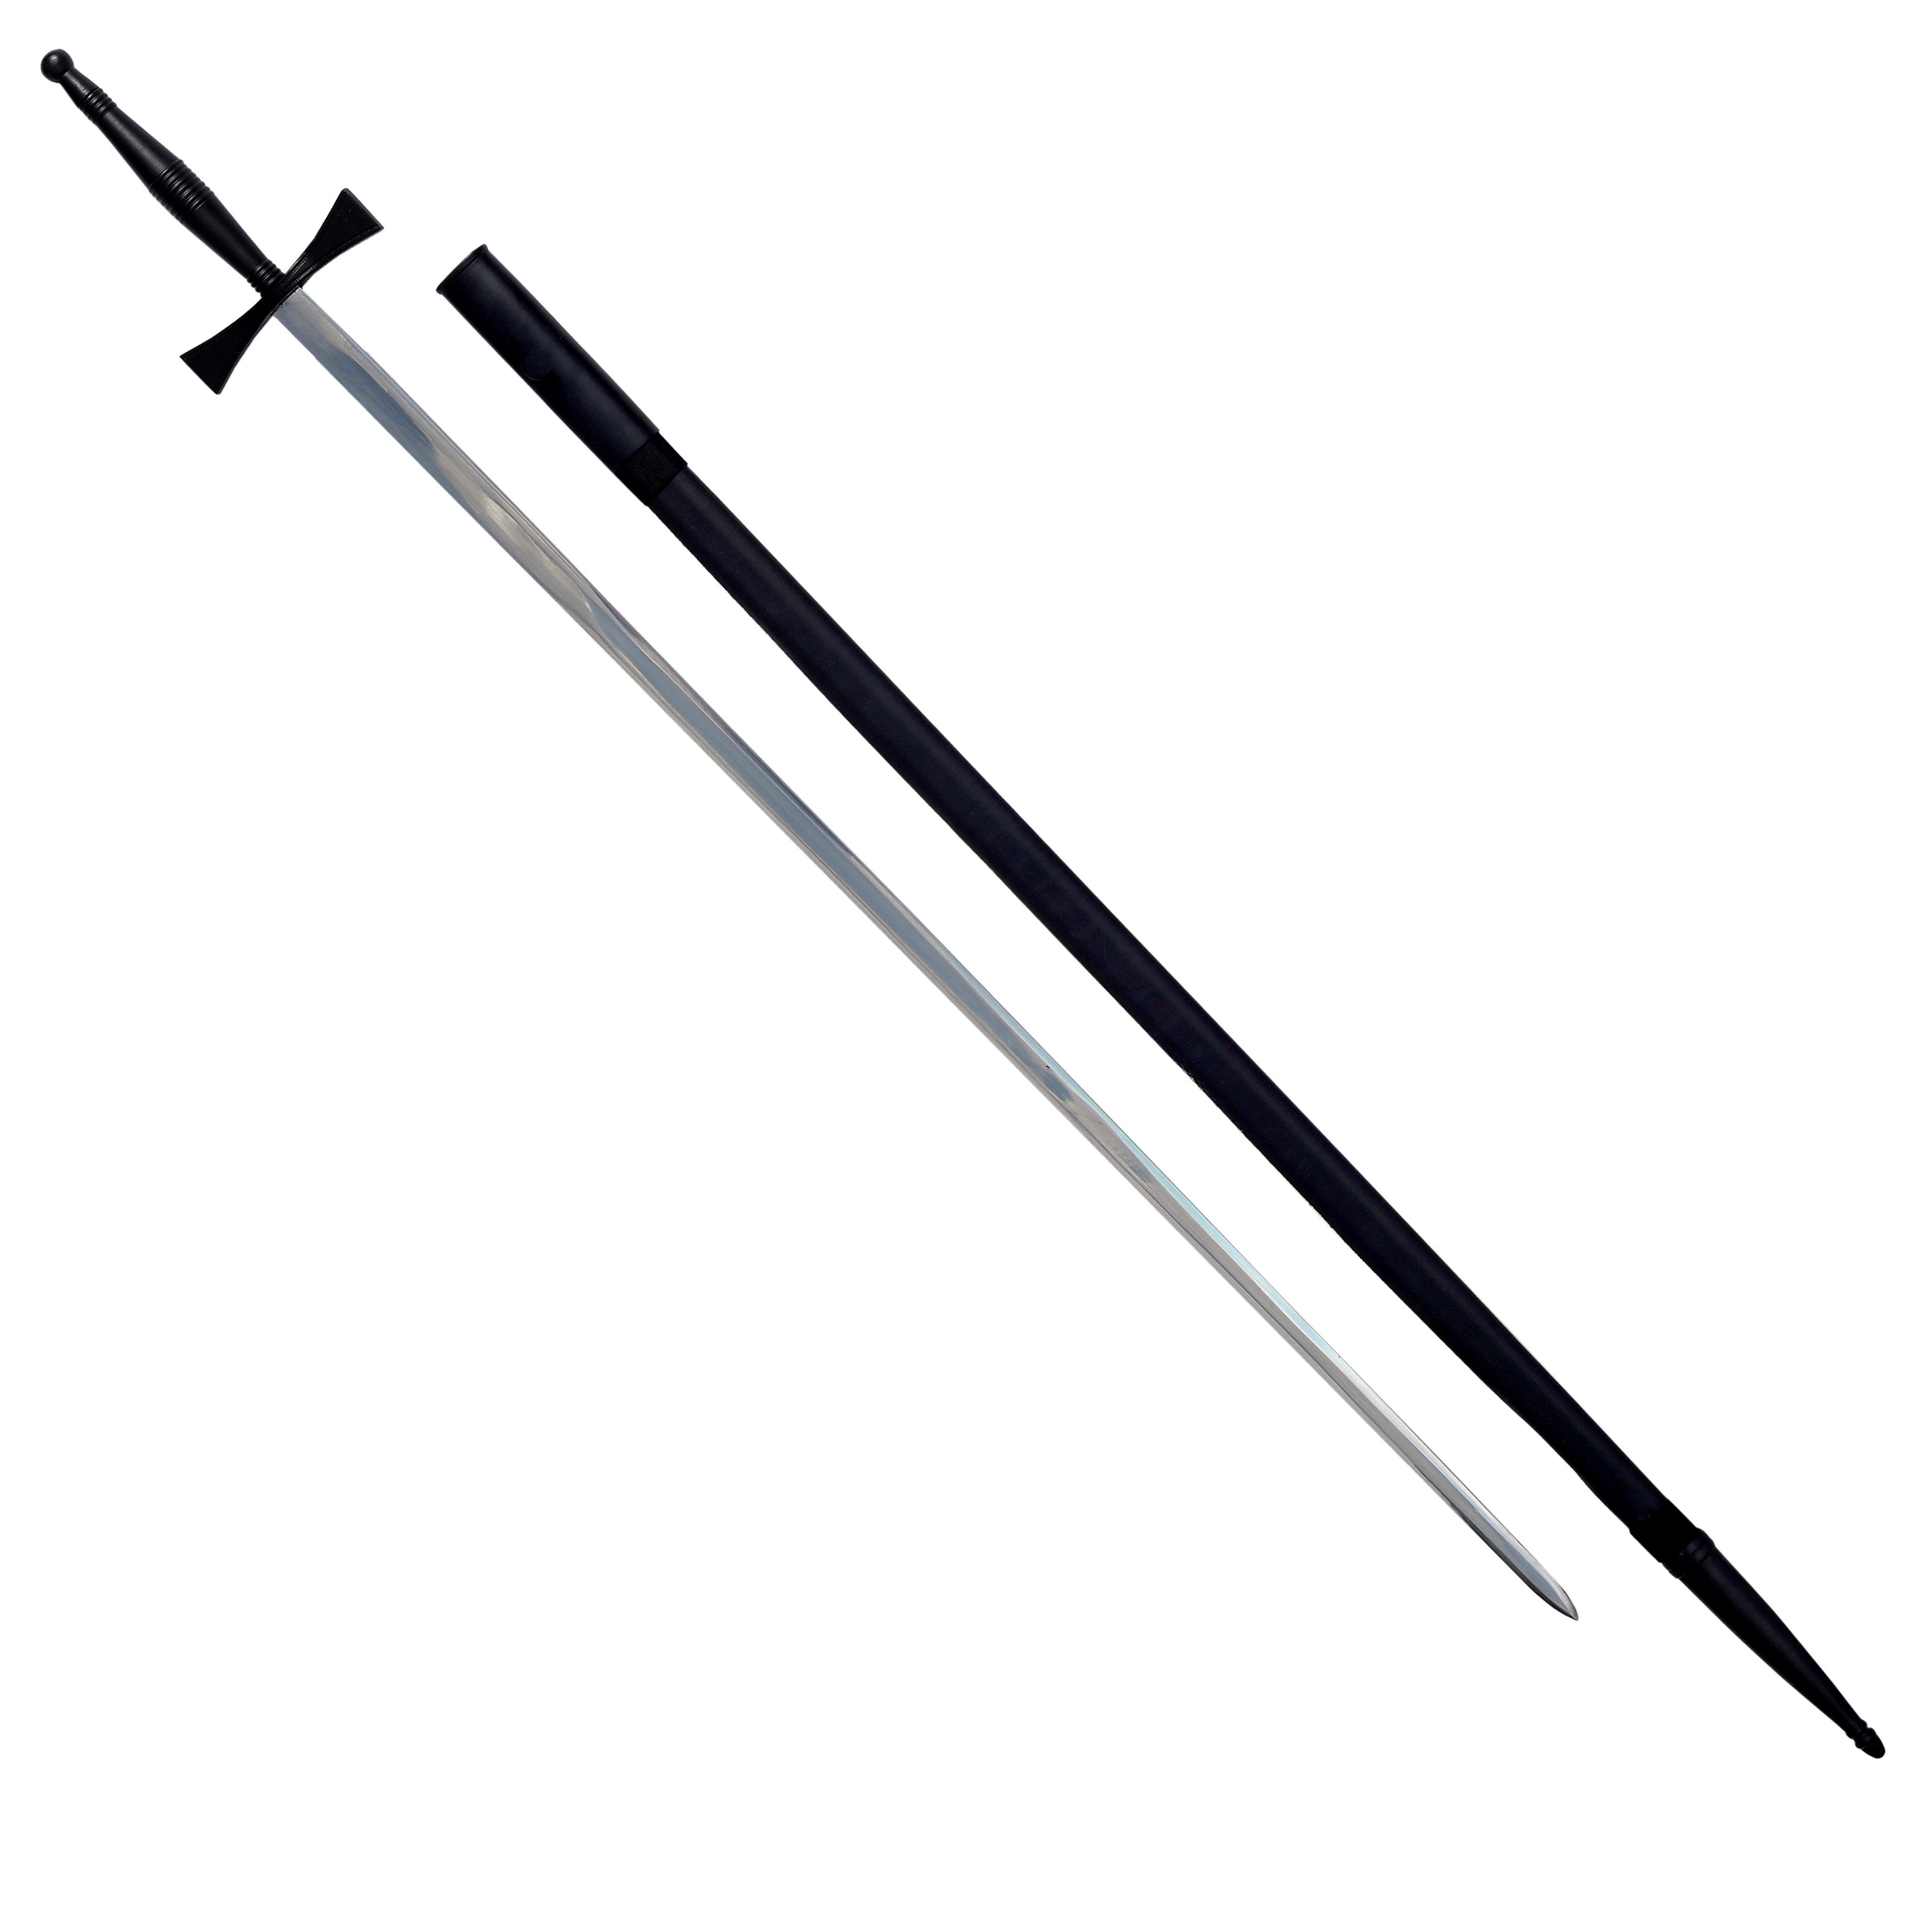 "Masonic Sword with Black Hilt and Black Scabbard 35 3/4"" + Free Case"